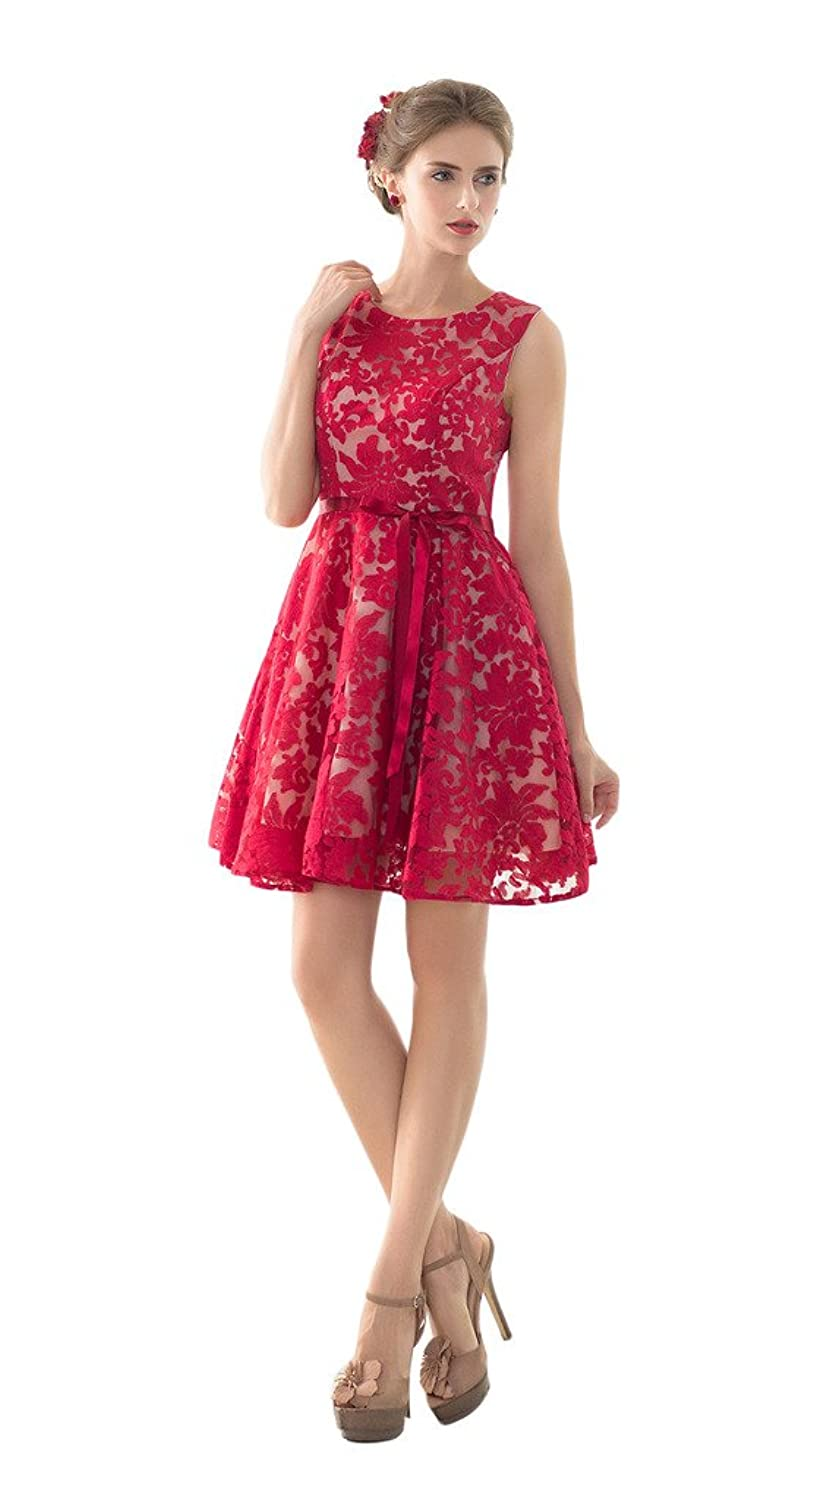 Vimans? 2016 Short Red Floral Quinceanera Dresses with Satin Sash for Girls